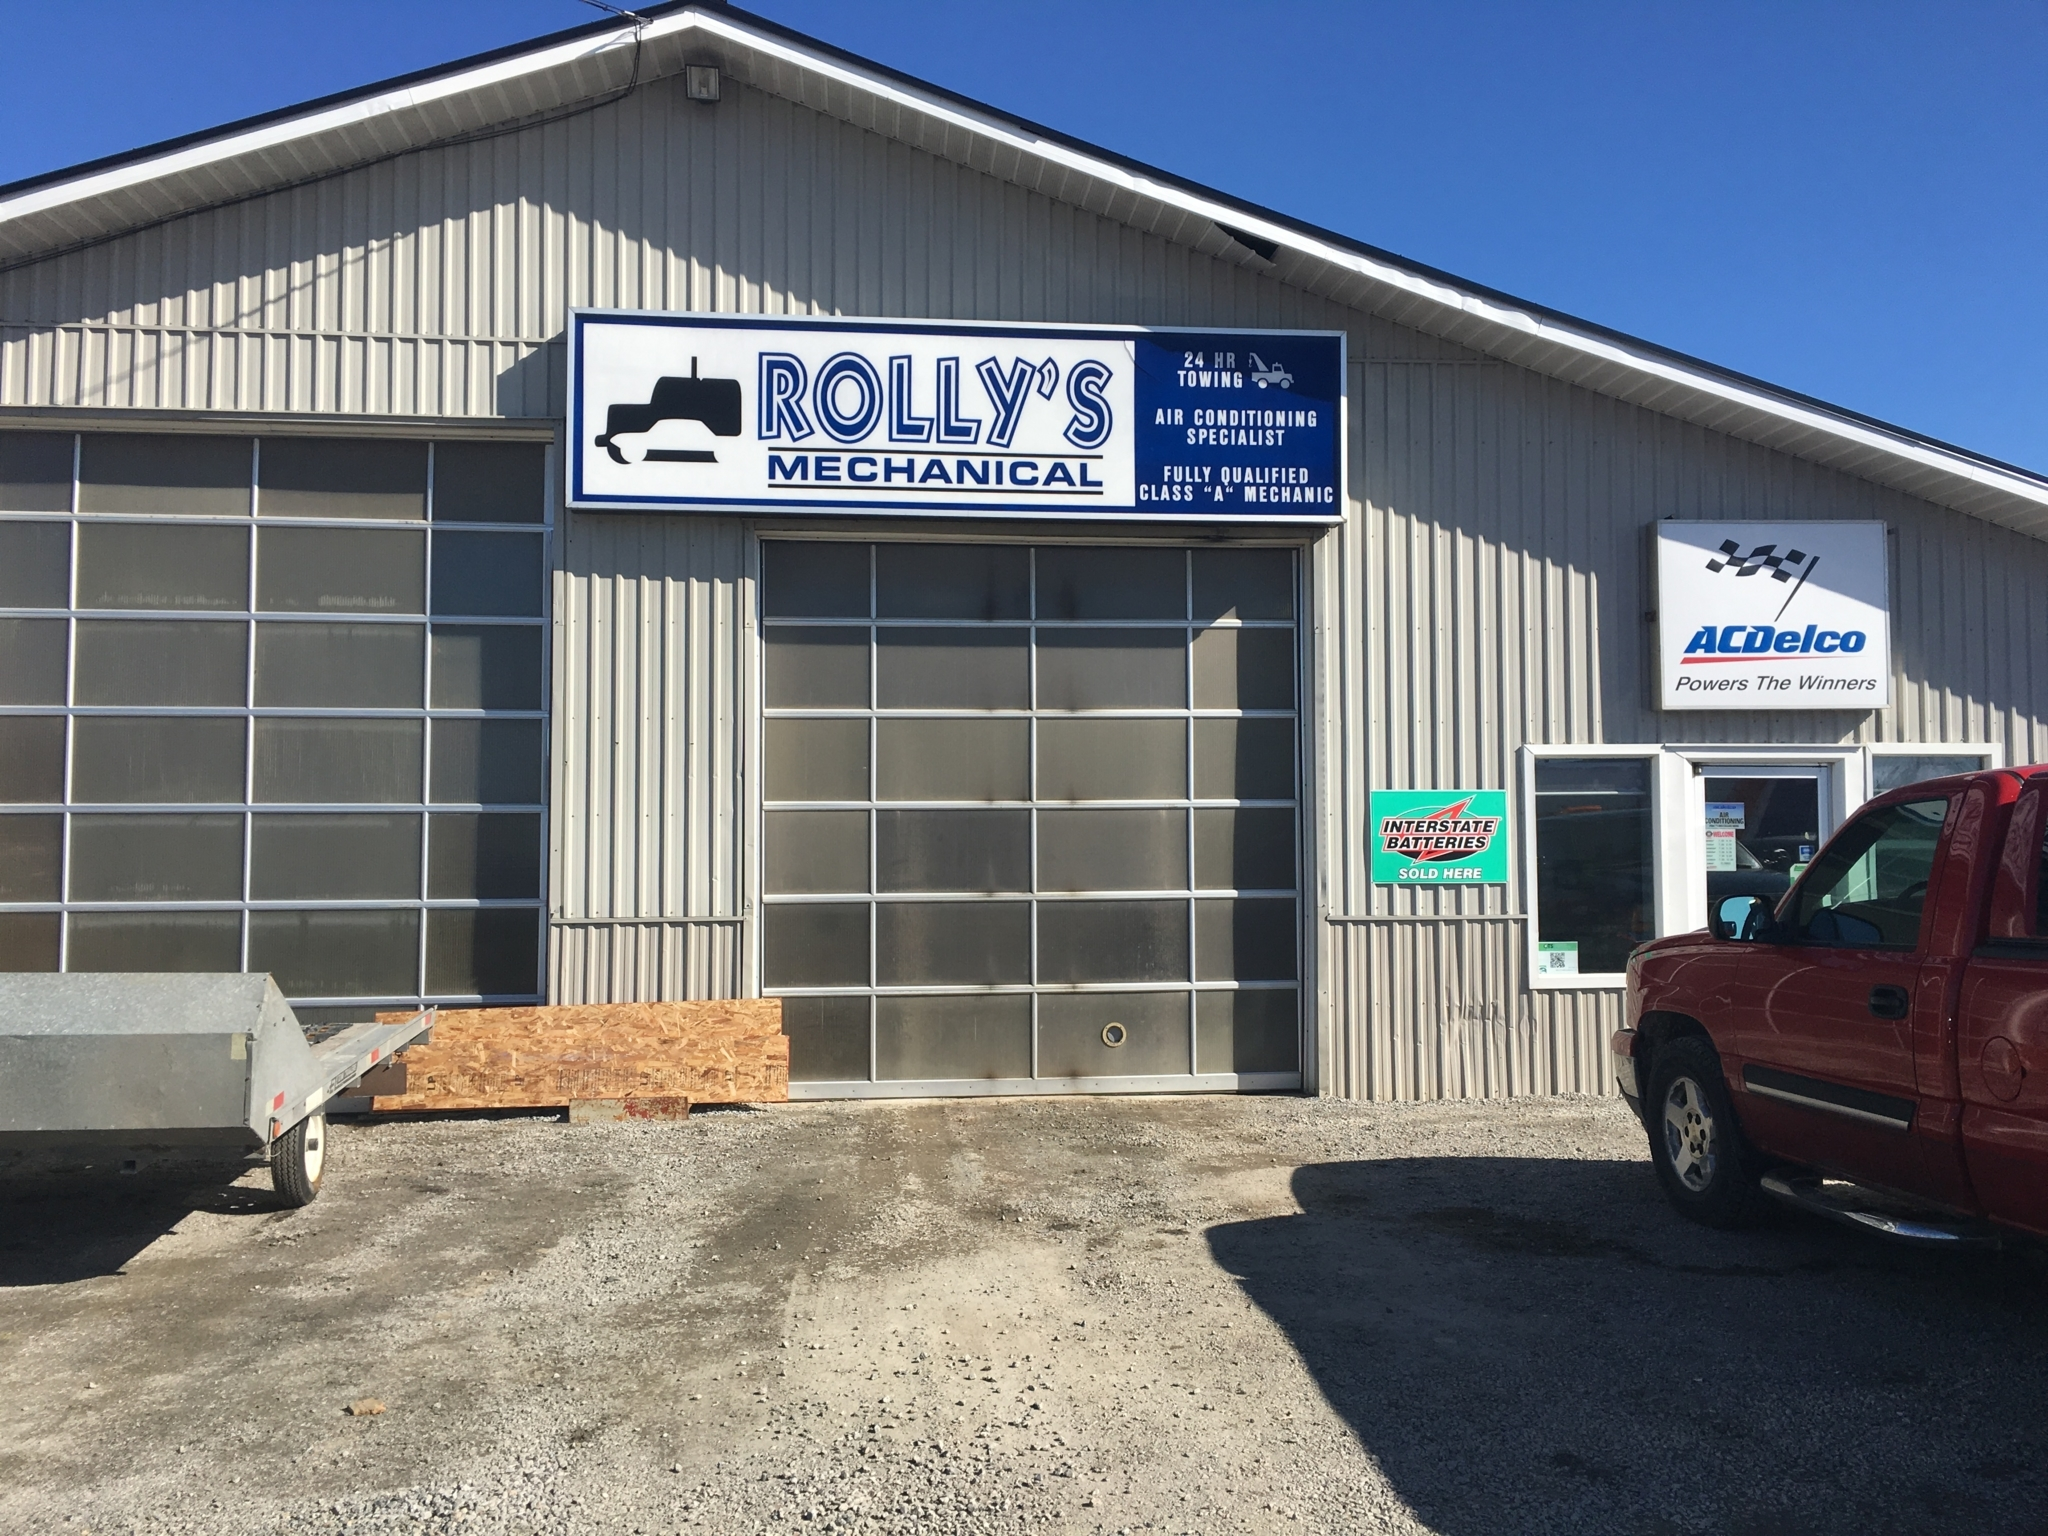 Rolly's Mechanical Ltd in Smooth Rock Falls